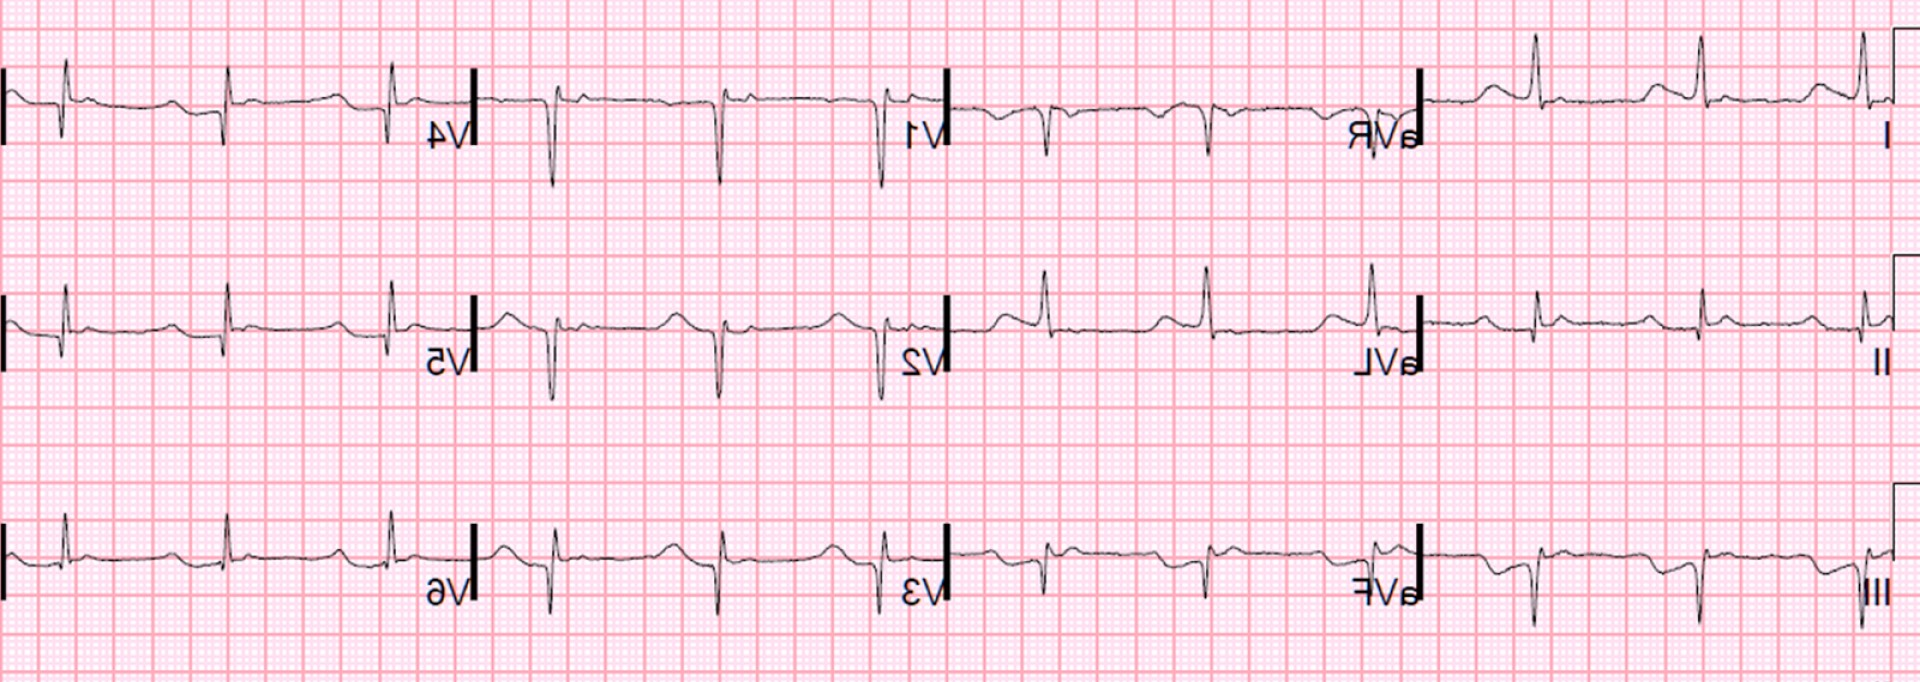 Positive EKG Vectors: True Positive St Elevation In Avl Vs